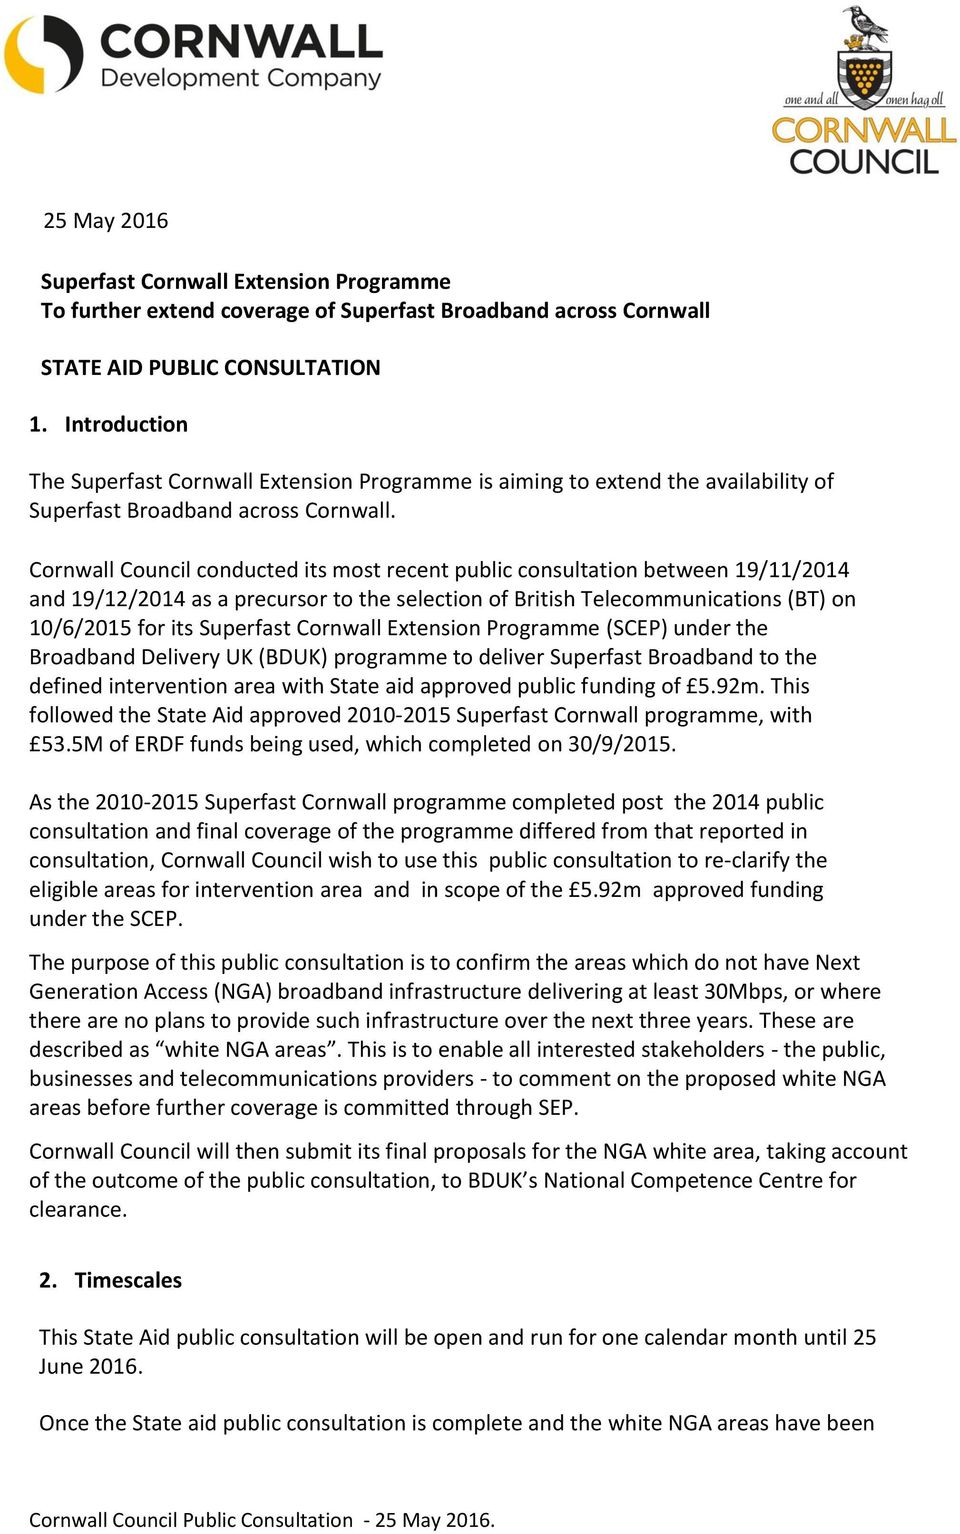 Cornwall Council conducted its most recent public consultation between 19/11/2014 and 19/12/2014 as a precursor to the selection of British Telecommunications (BT) on 10/6/2015 for its Superfast